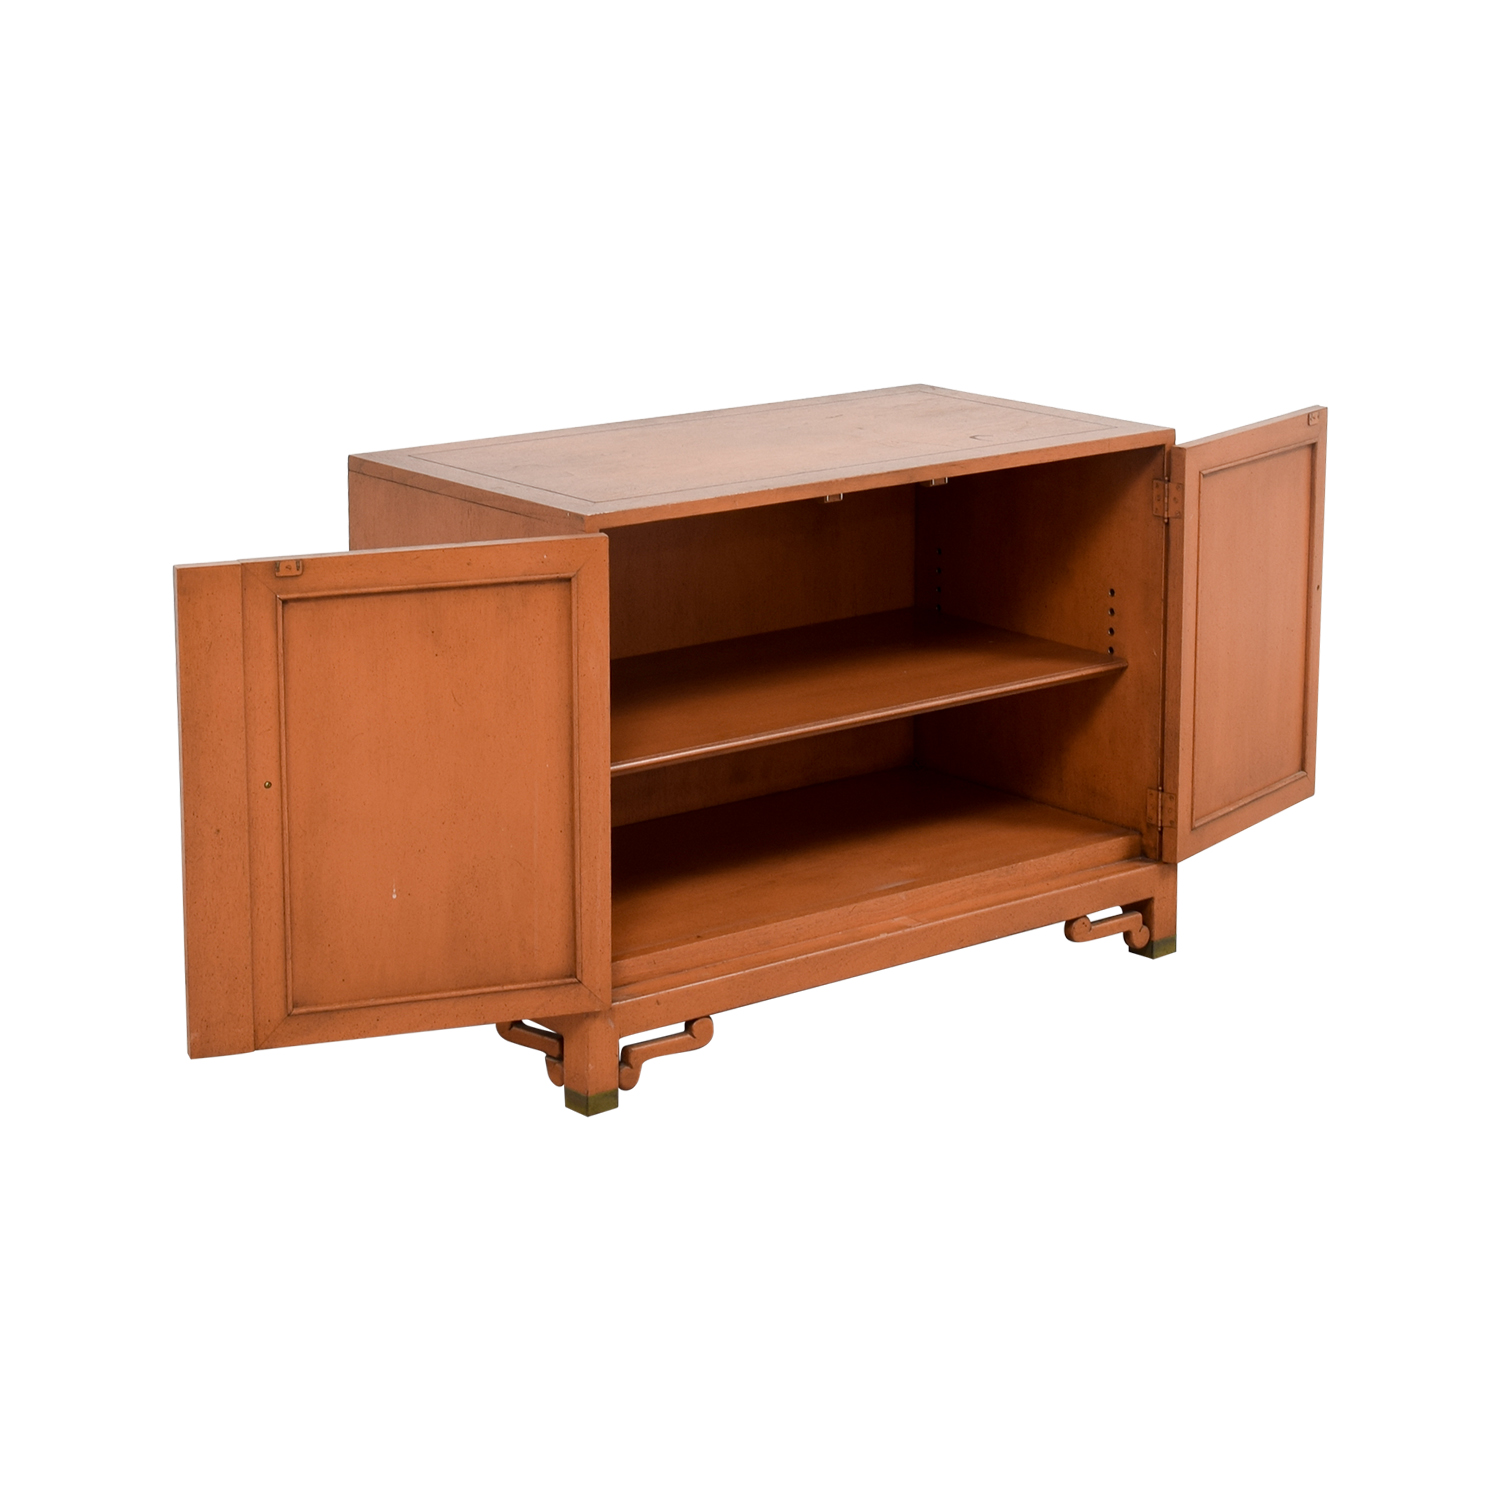 Unknown Wood Cabinet with Two Shelves price